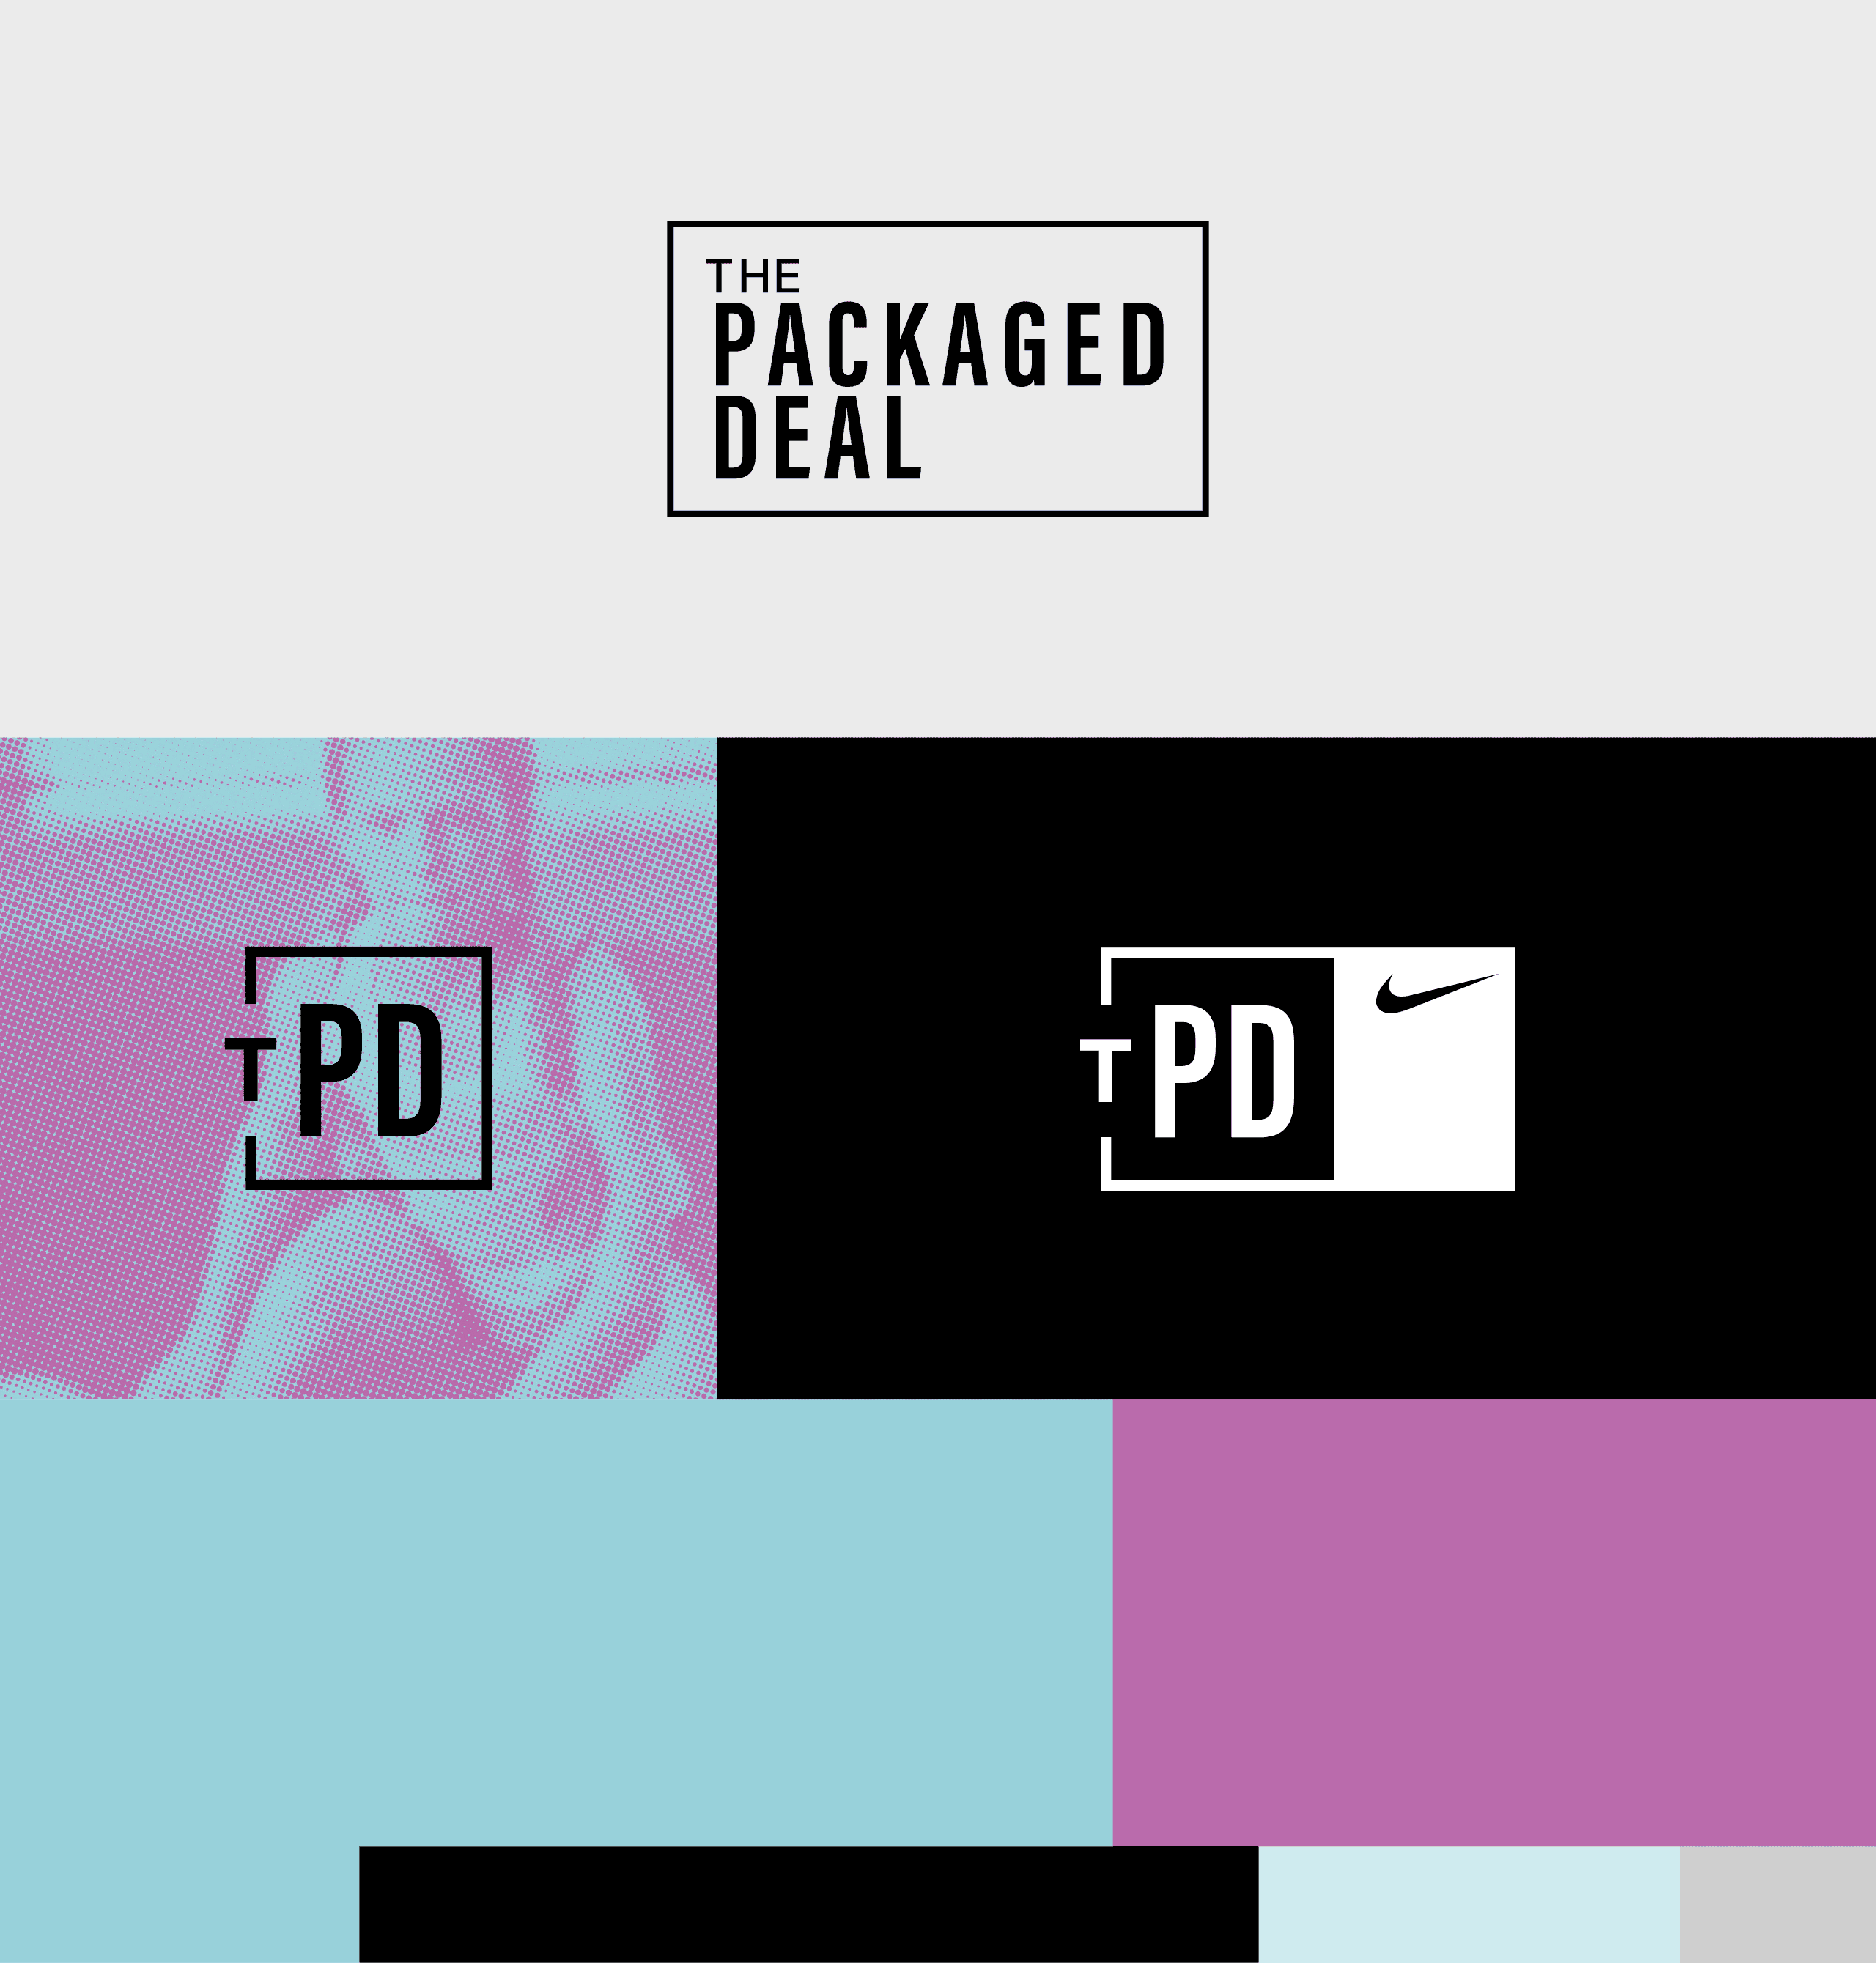 The Packaged Deal Identity and Color Palette